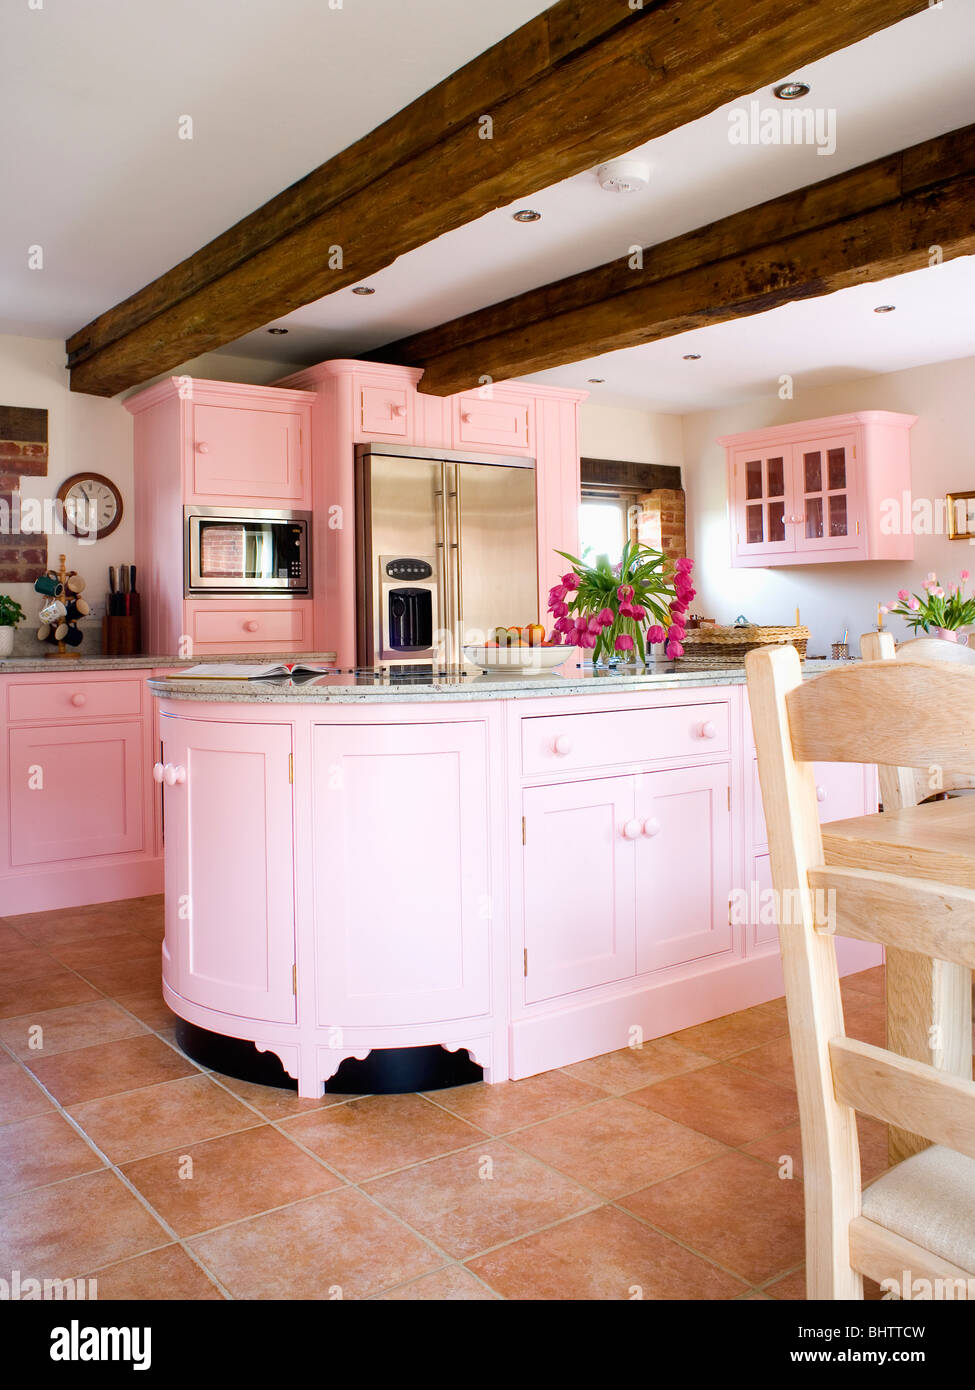 Kitchens With Terracotta Floors Pastel Pink Fitted Units And Beamed Ceiling In Country Kitchen